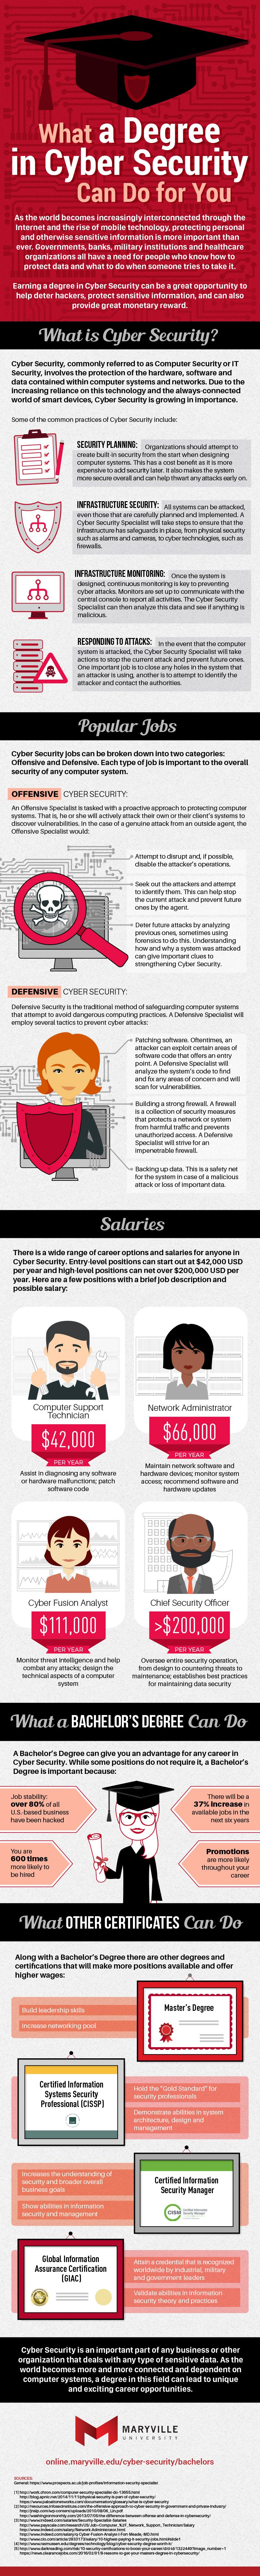 What A Degree In Cyber Security Can Do For You Infographic Cyber Security Education Cyber Security Computer Security